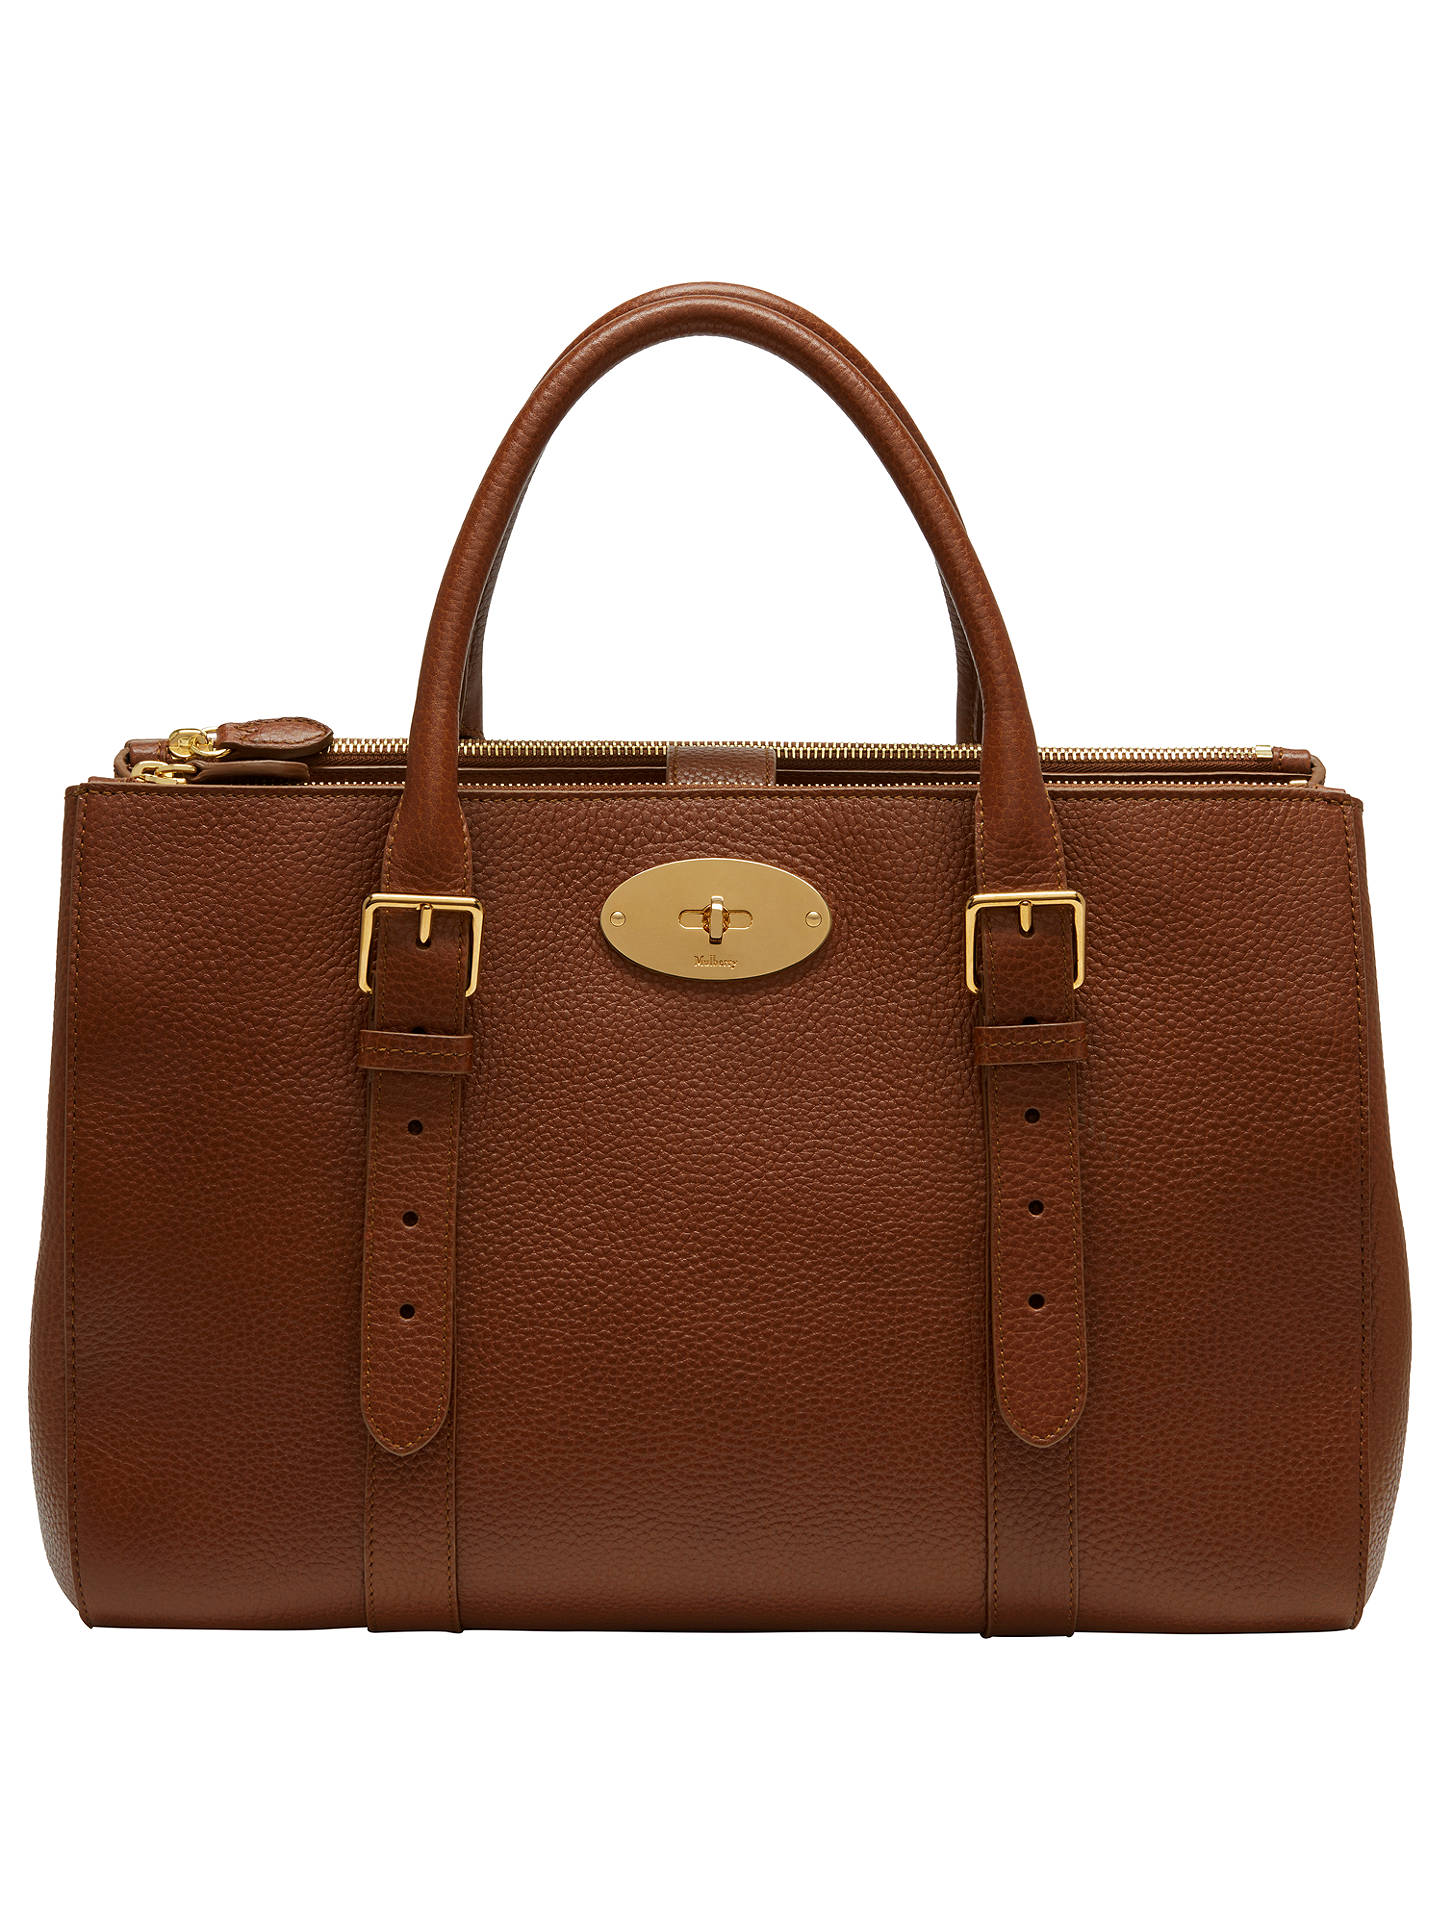 d5d9c1c40e1e Mulberry Bayswater Leather Large Double Zip Tote Bag at John Lewis ...